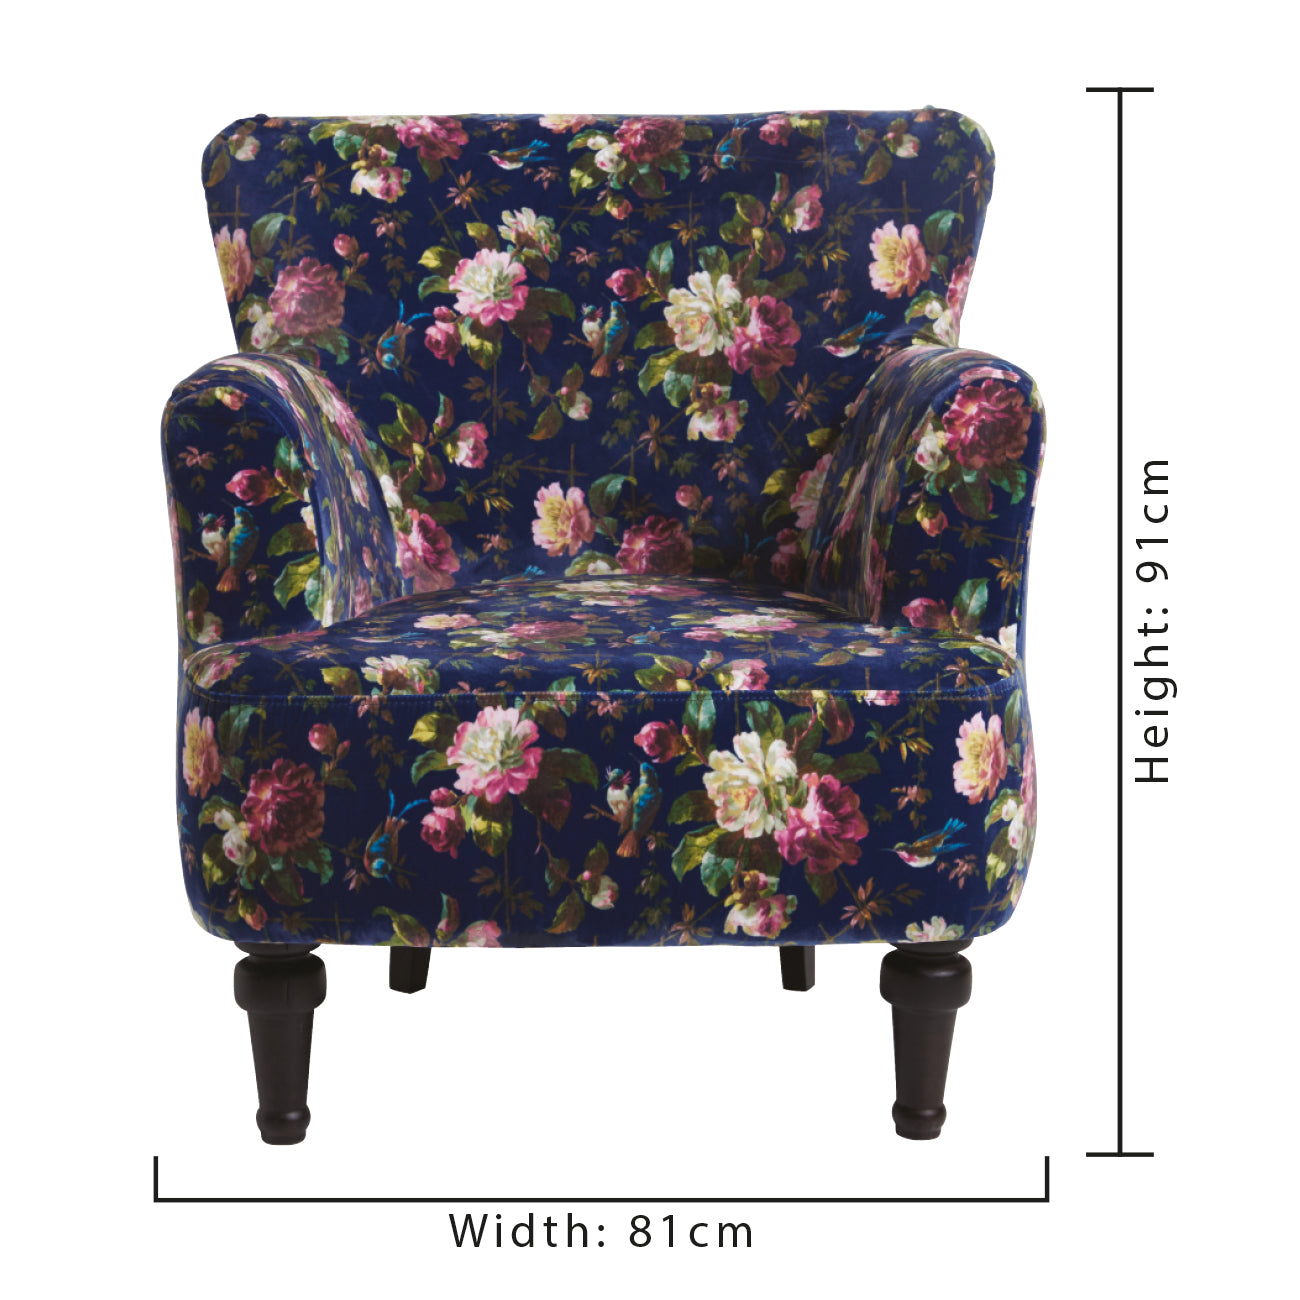 Oasis Dalston Renaissance Midnight Designer Accent Chair